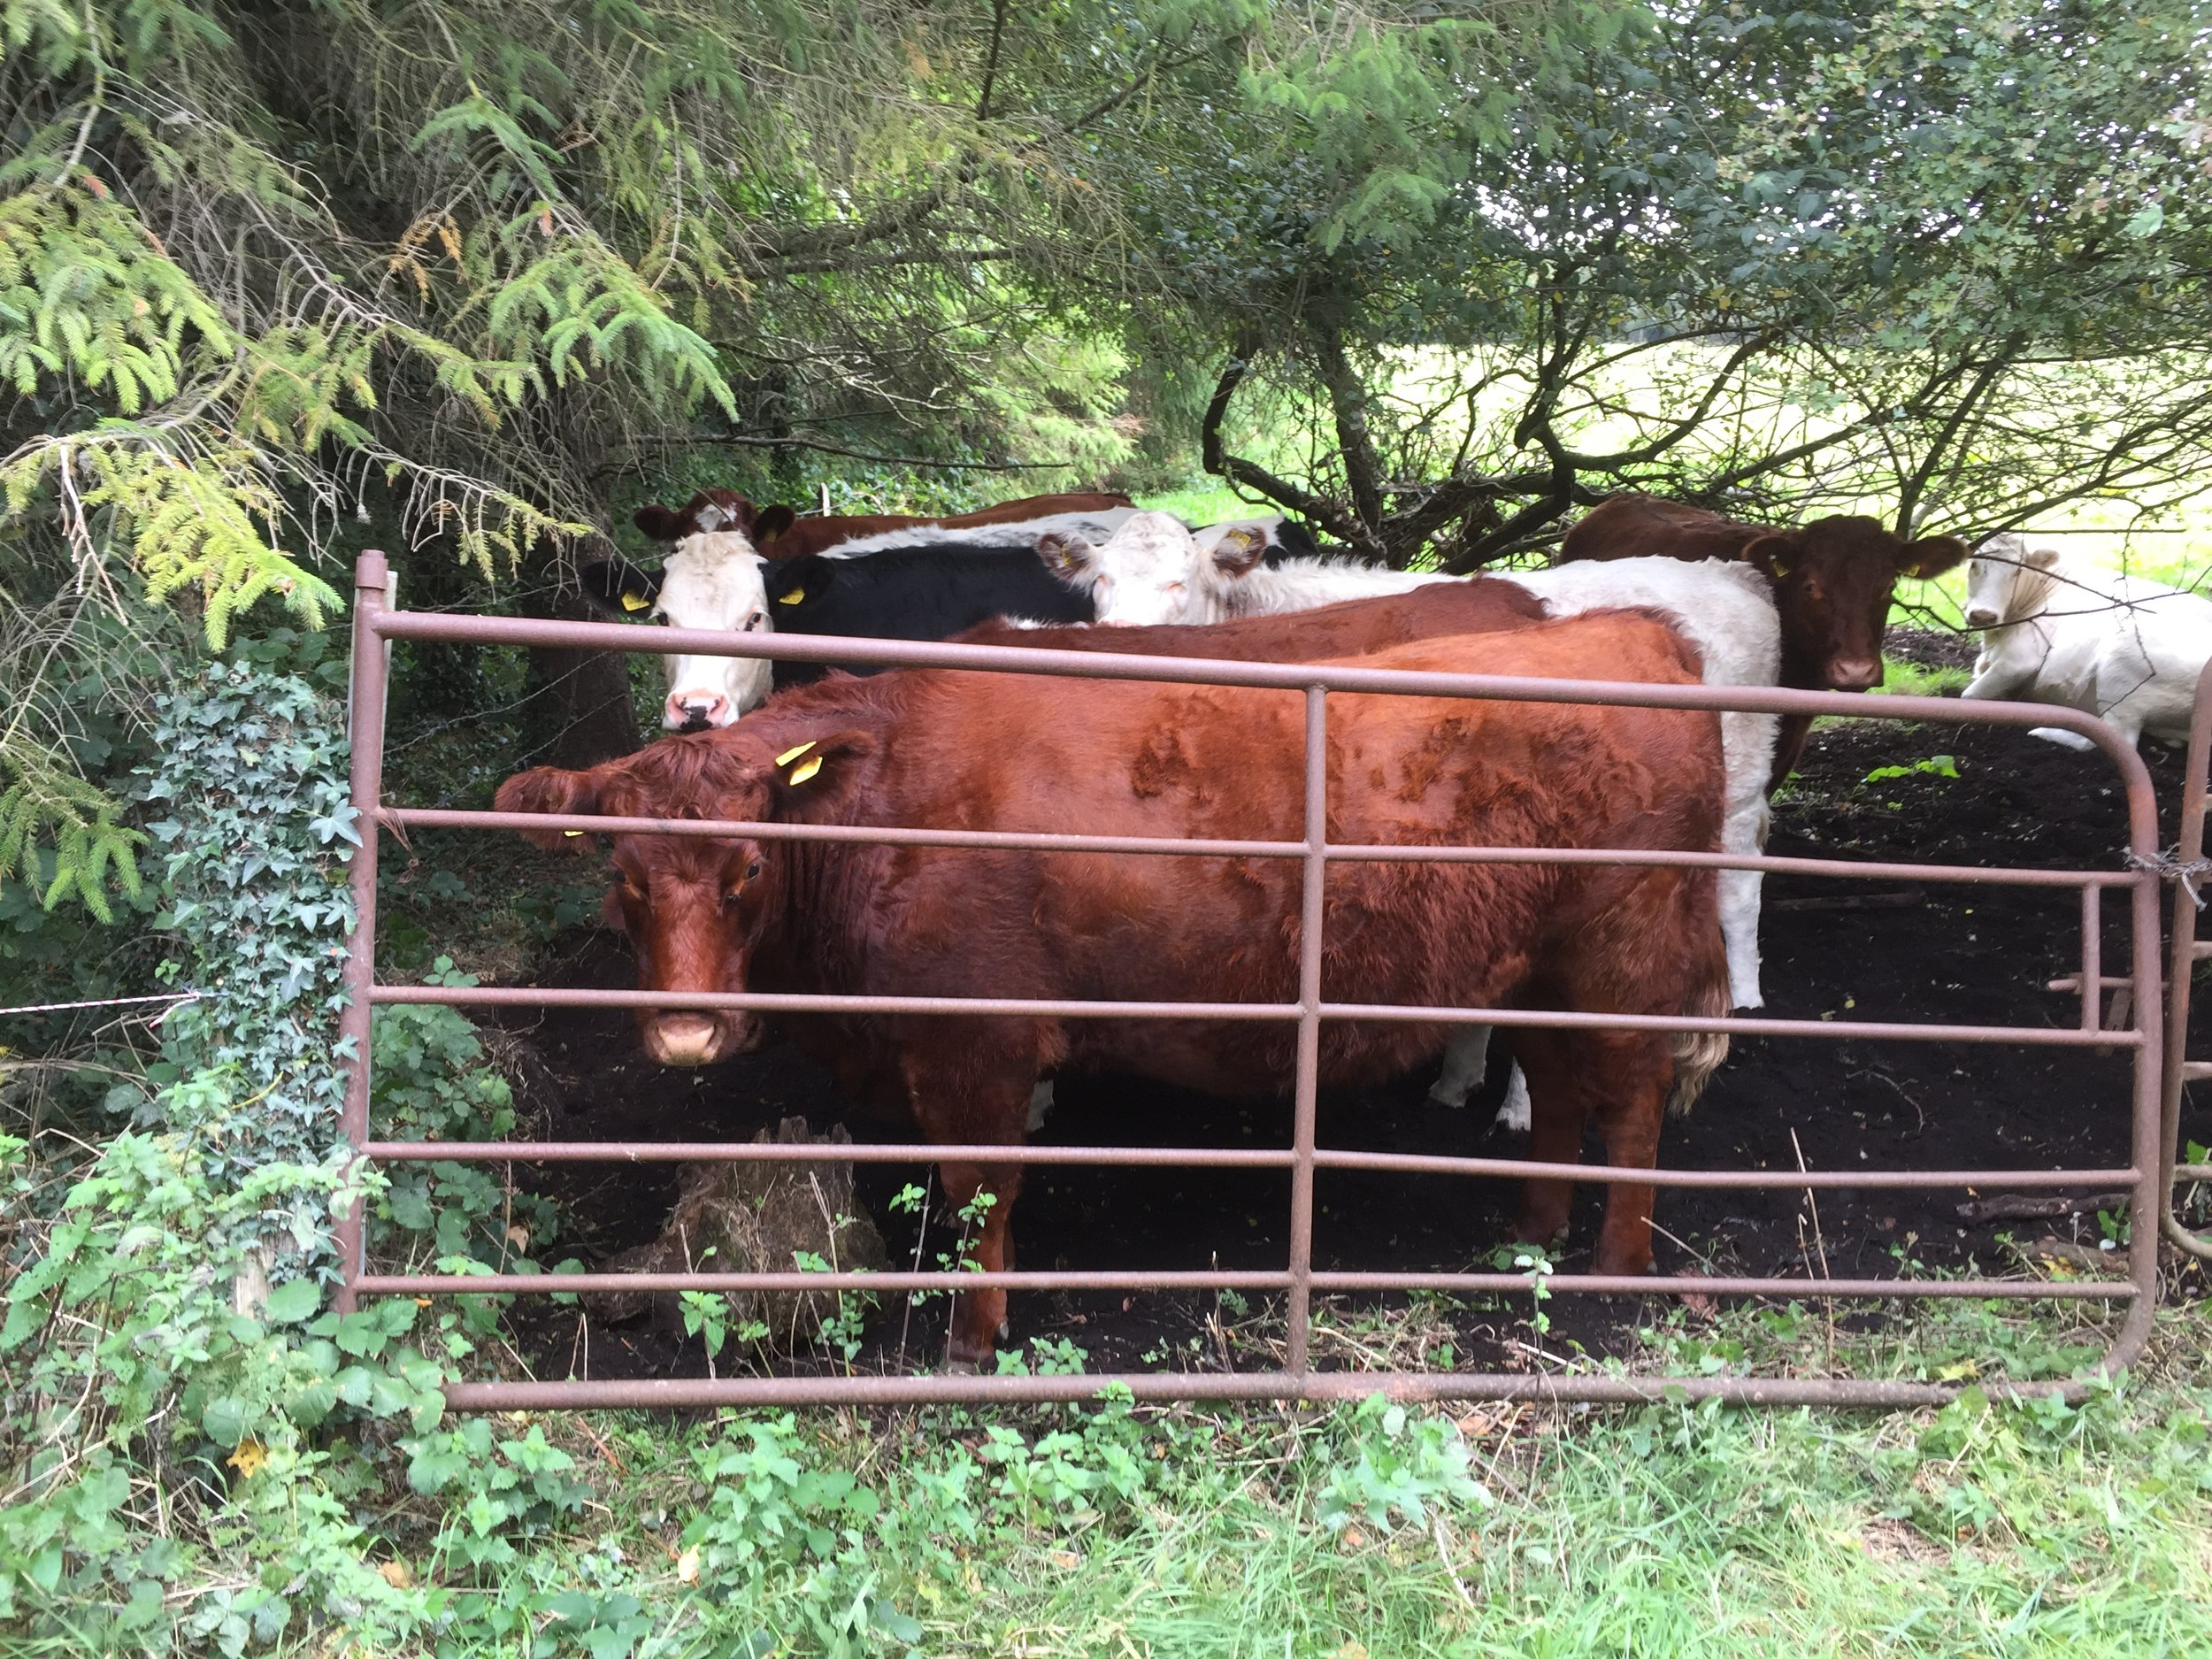 Cattle are still out in the fields. When the weather becomes wetter and colder, they will probably be brought into sheds for the winter. Or they will be moved to dryer ground and fed out in the fields when the grass dies back.